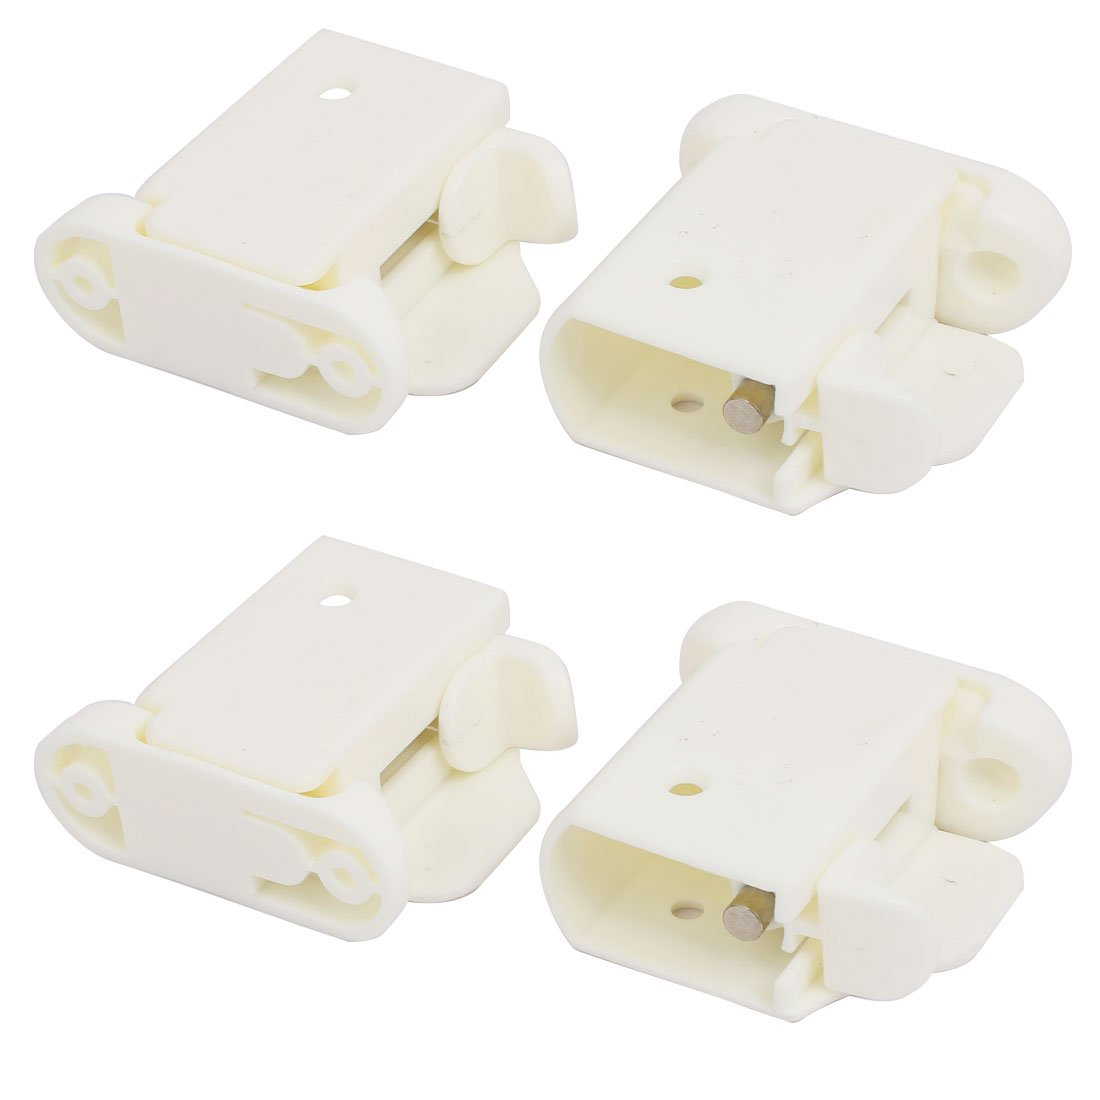 uxcell 21mmx35mm Plastic Left Right Side Guardrail Rail Buckle 2 Sets White w Spring